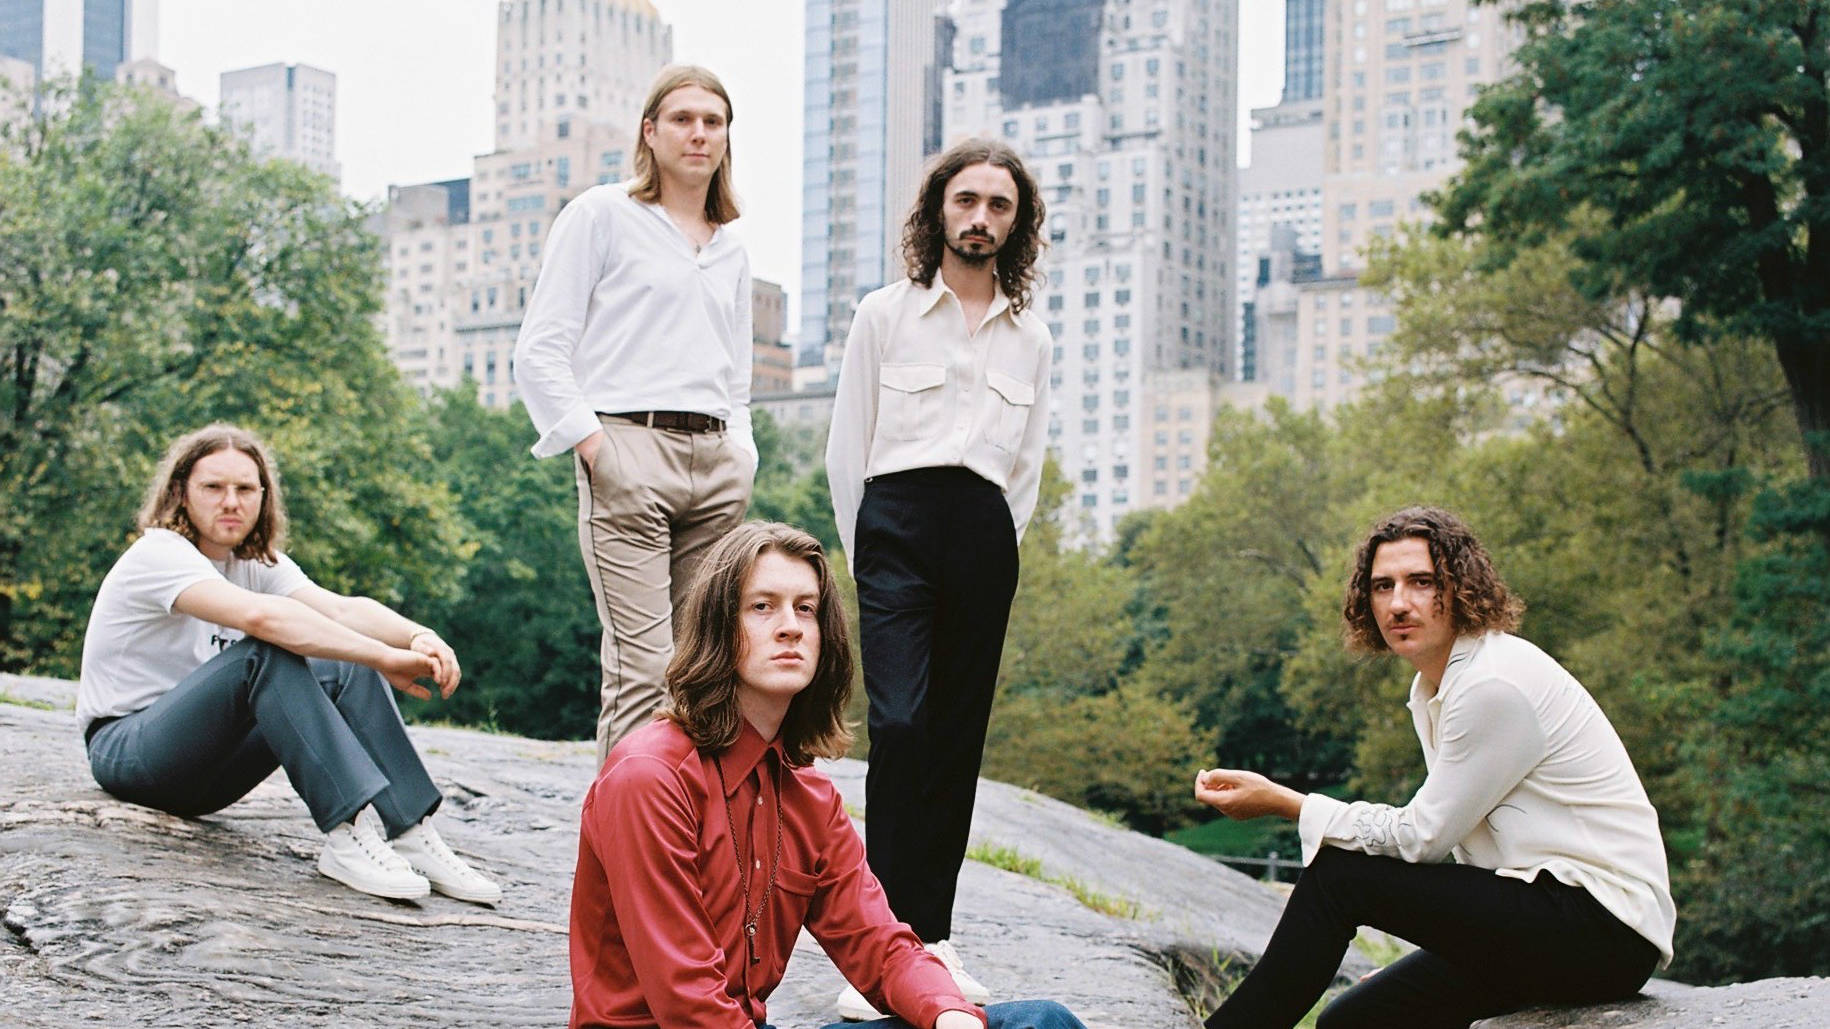 Blossoms' Foolish Loving Spaces album launch gigs: dates, venues & how to buy tickets